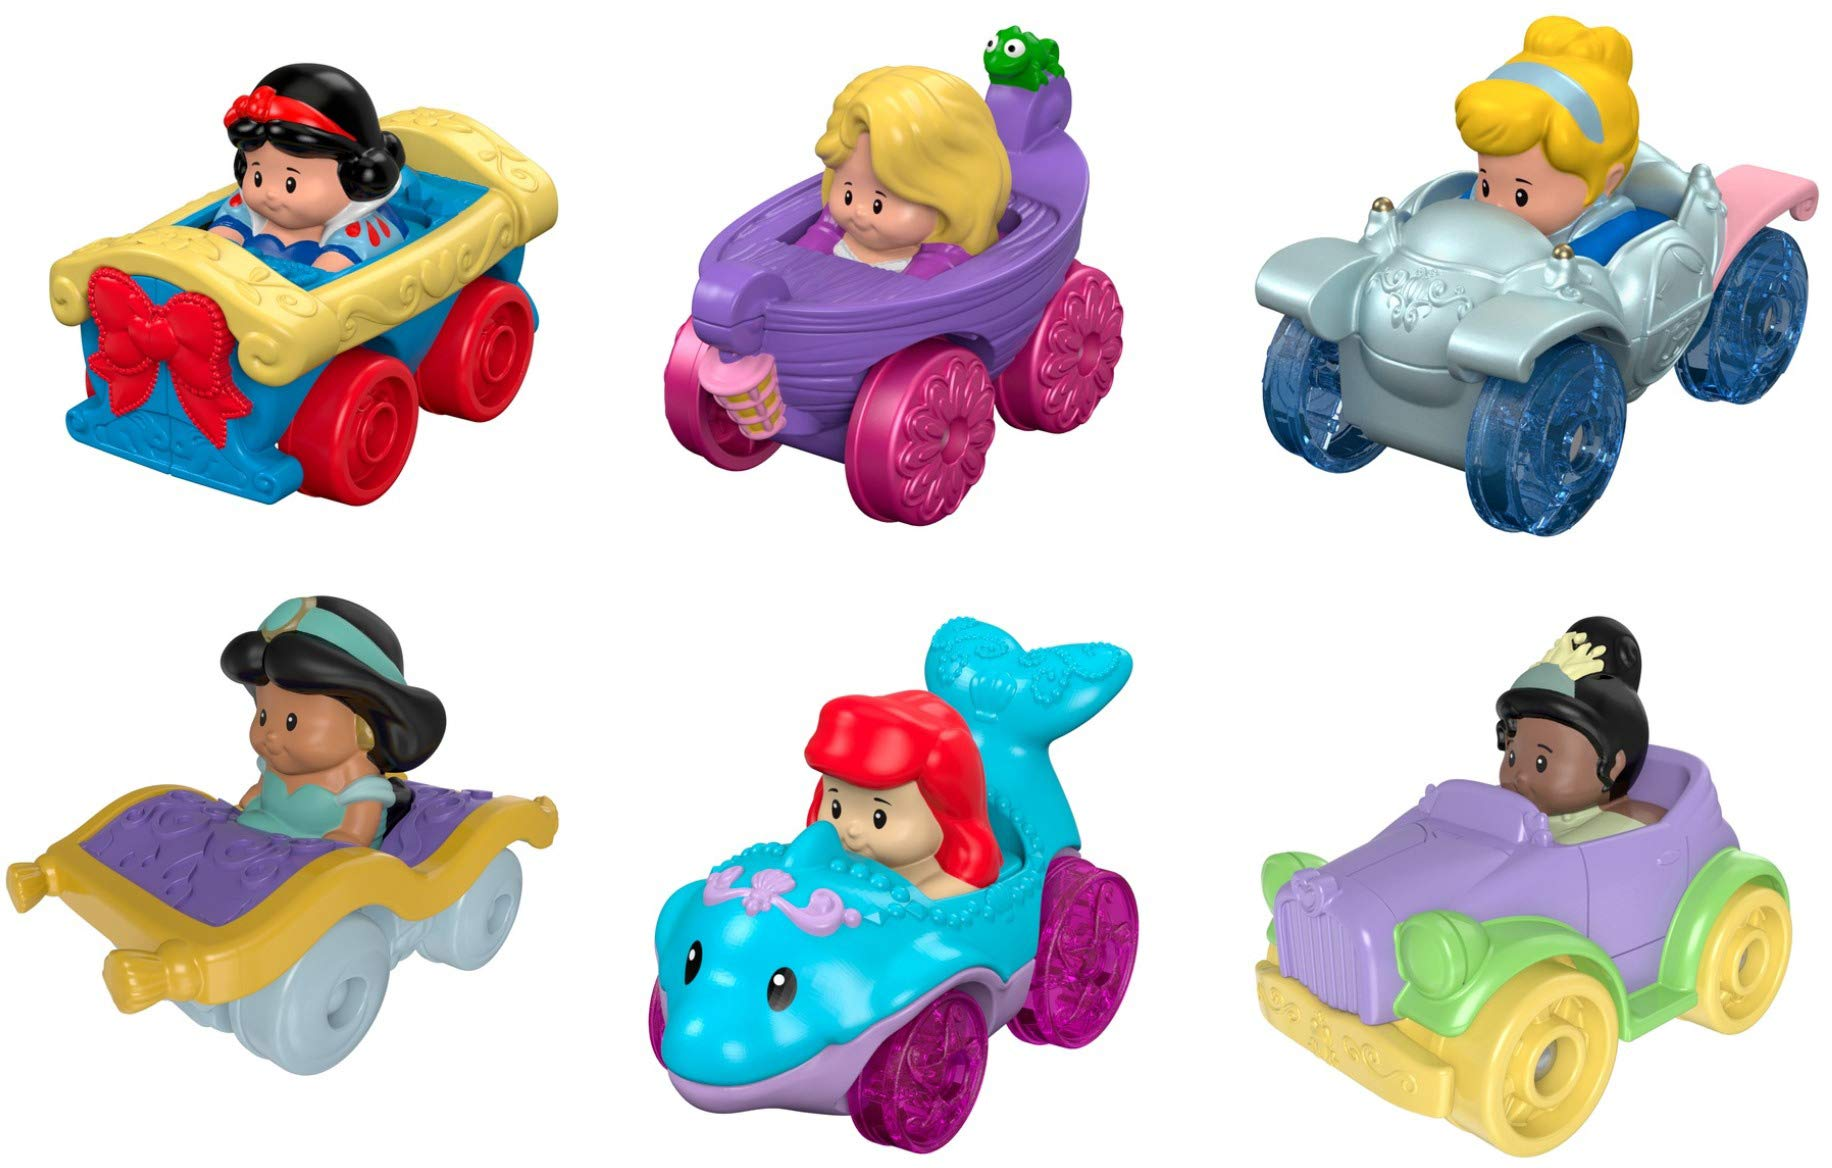 Fisher-Price Little People Disney Princess, Wheelies Gift Set (6 Pack) [Amazon Exclusive] (Limited Edition)